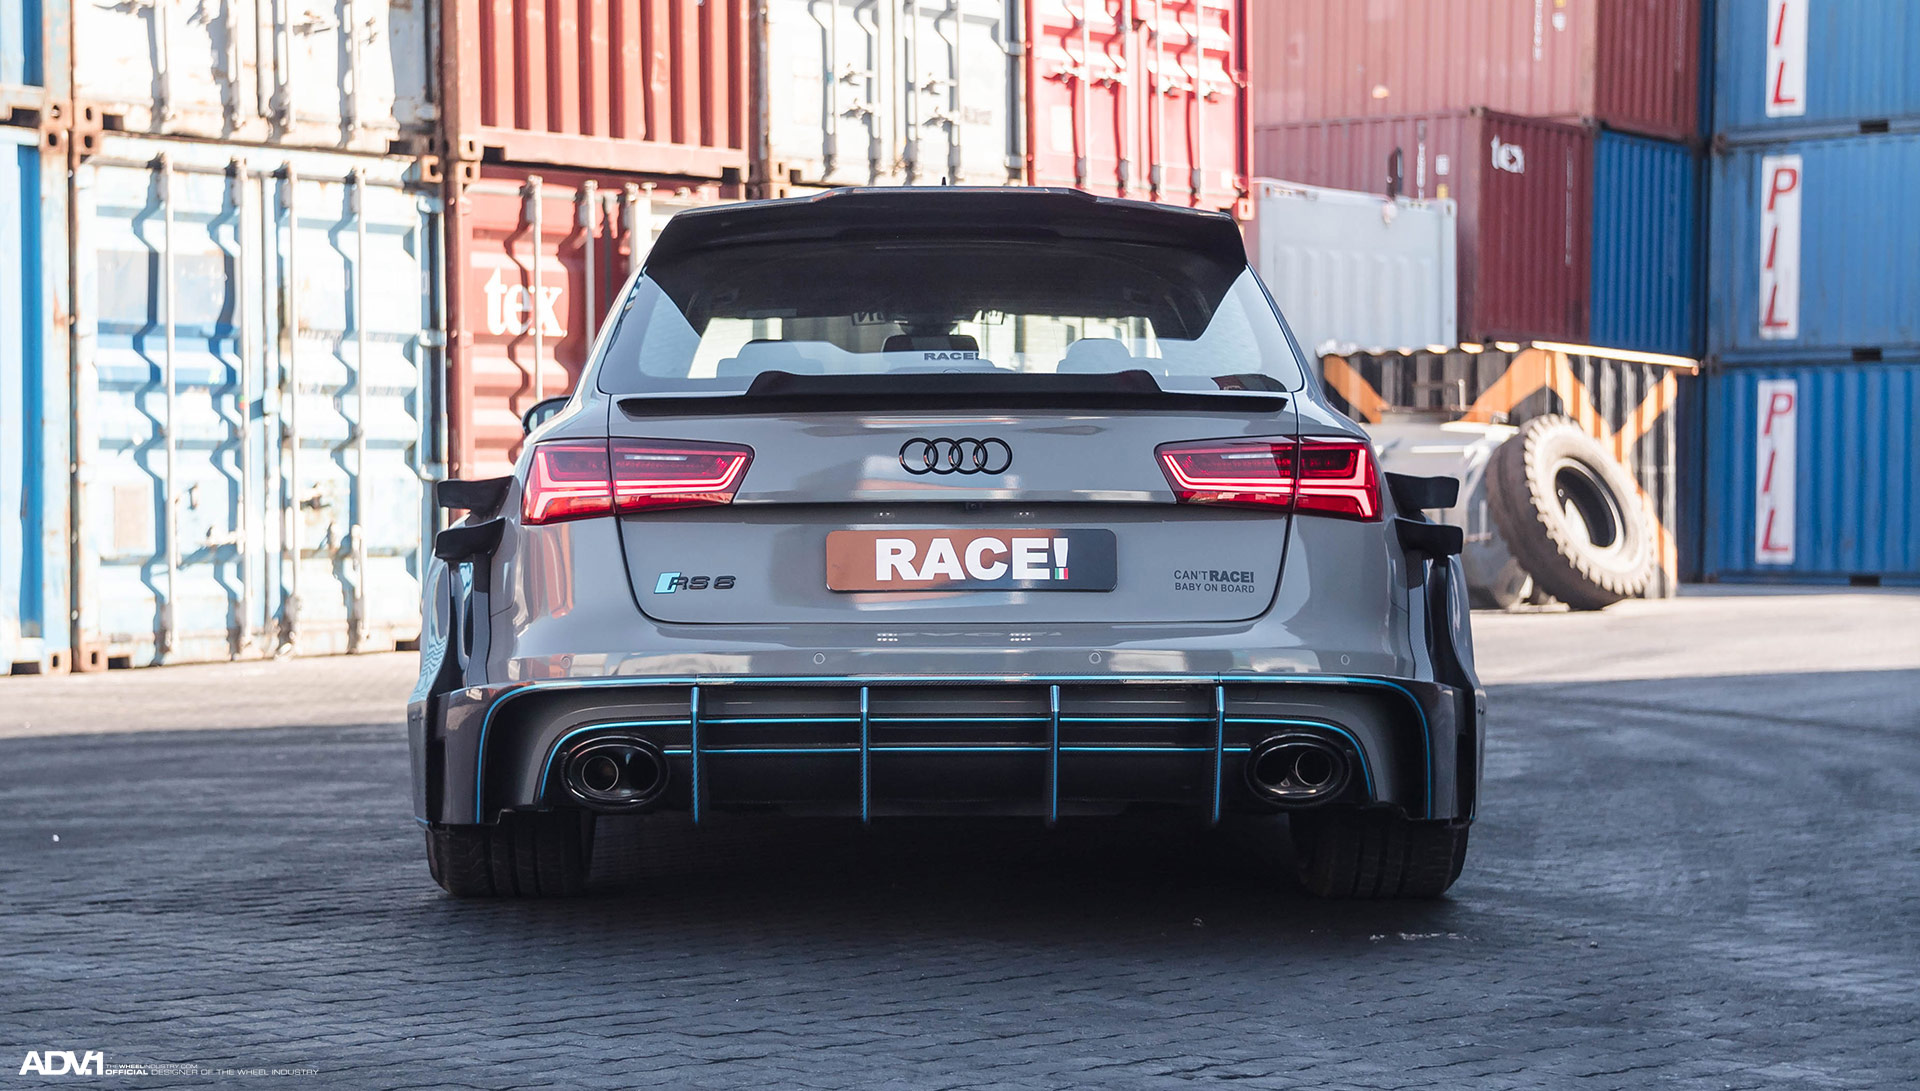 Audi RS6 Avant By Race (9)